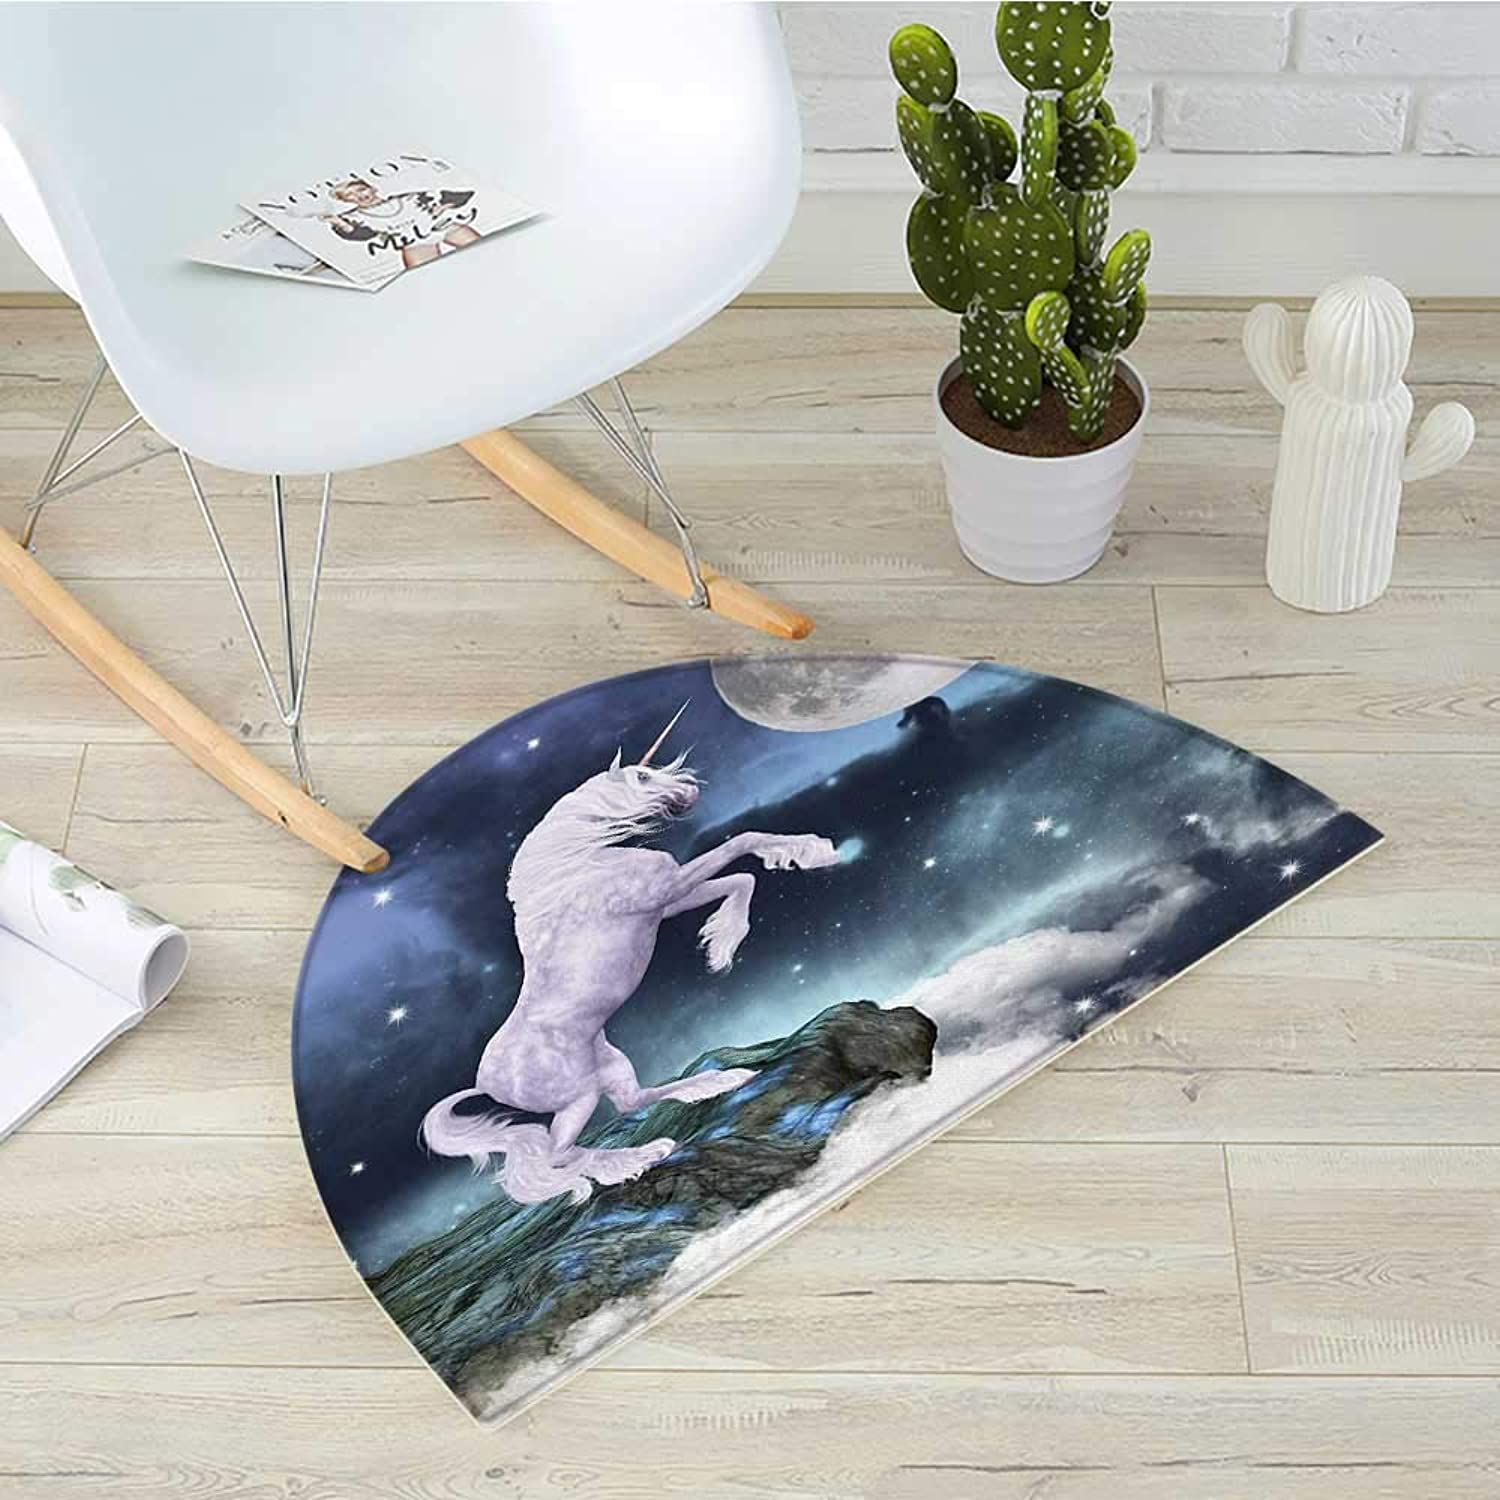 Unicorn Semicircle Doormat Legendary Creature on Up Cliffs Rocks in Full Moon Light Sky Fantasy Decor Artprint Halfmoon doormats H 39.3  xD 59  purplec bluee